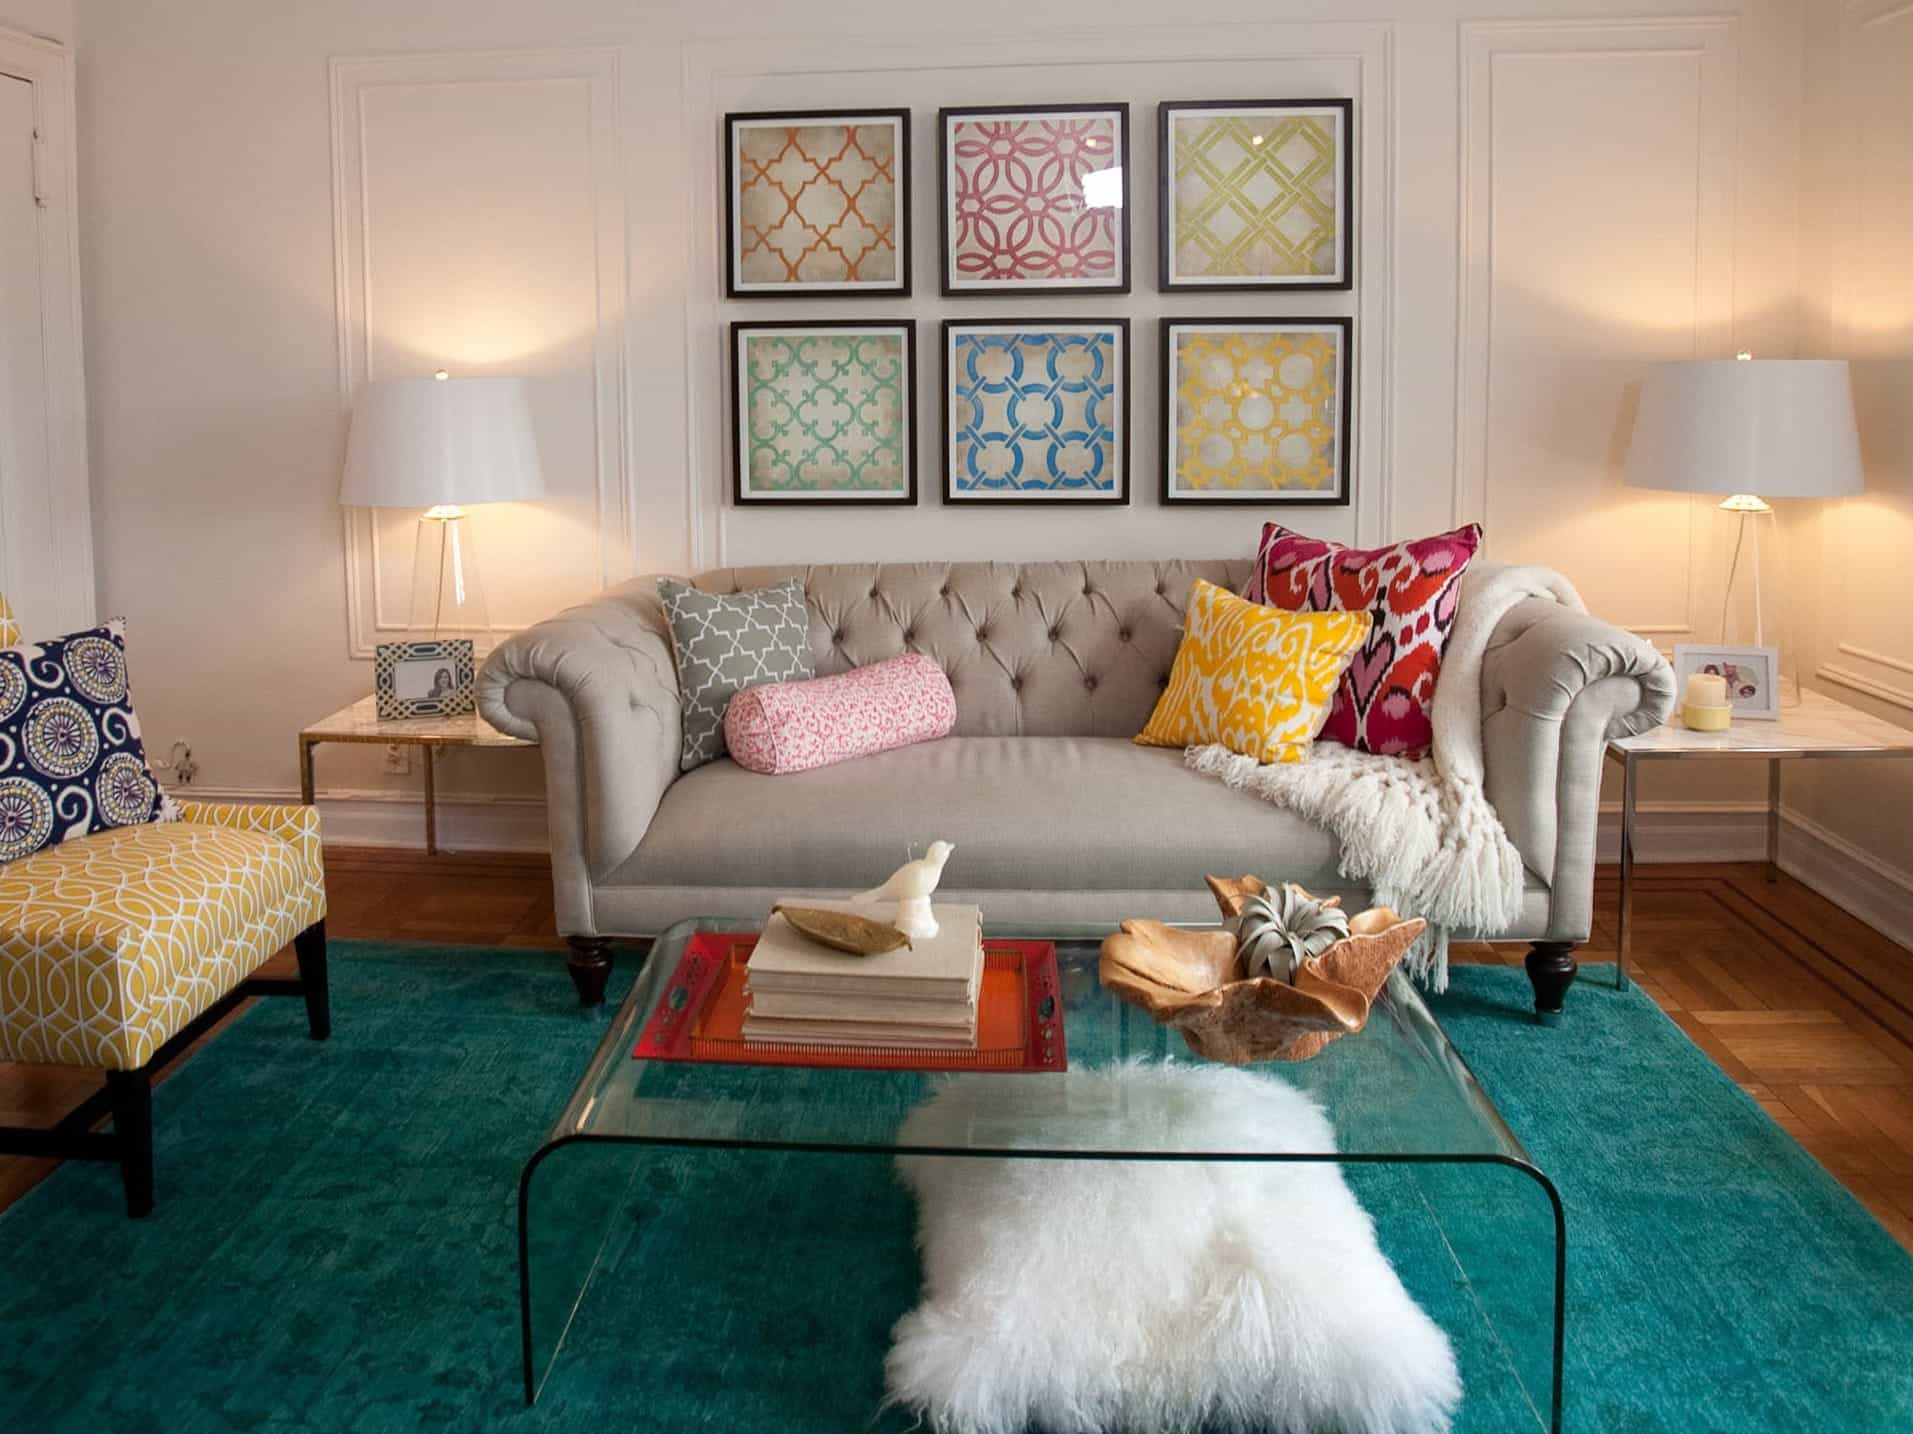 White Eclectic Living Room With Elegant Royal Sofa And Teal Area Rug (Image 31 of 31)